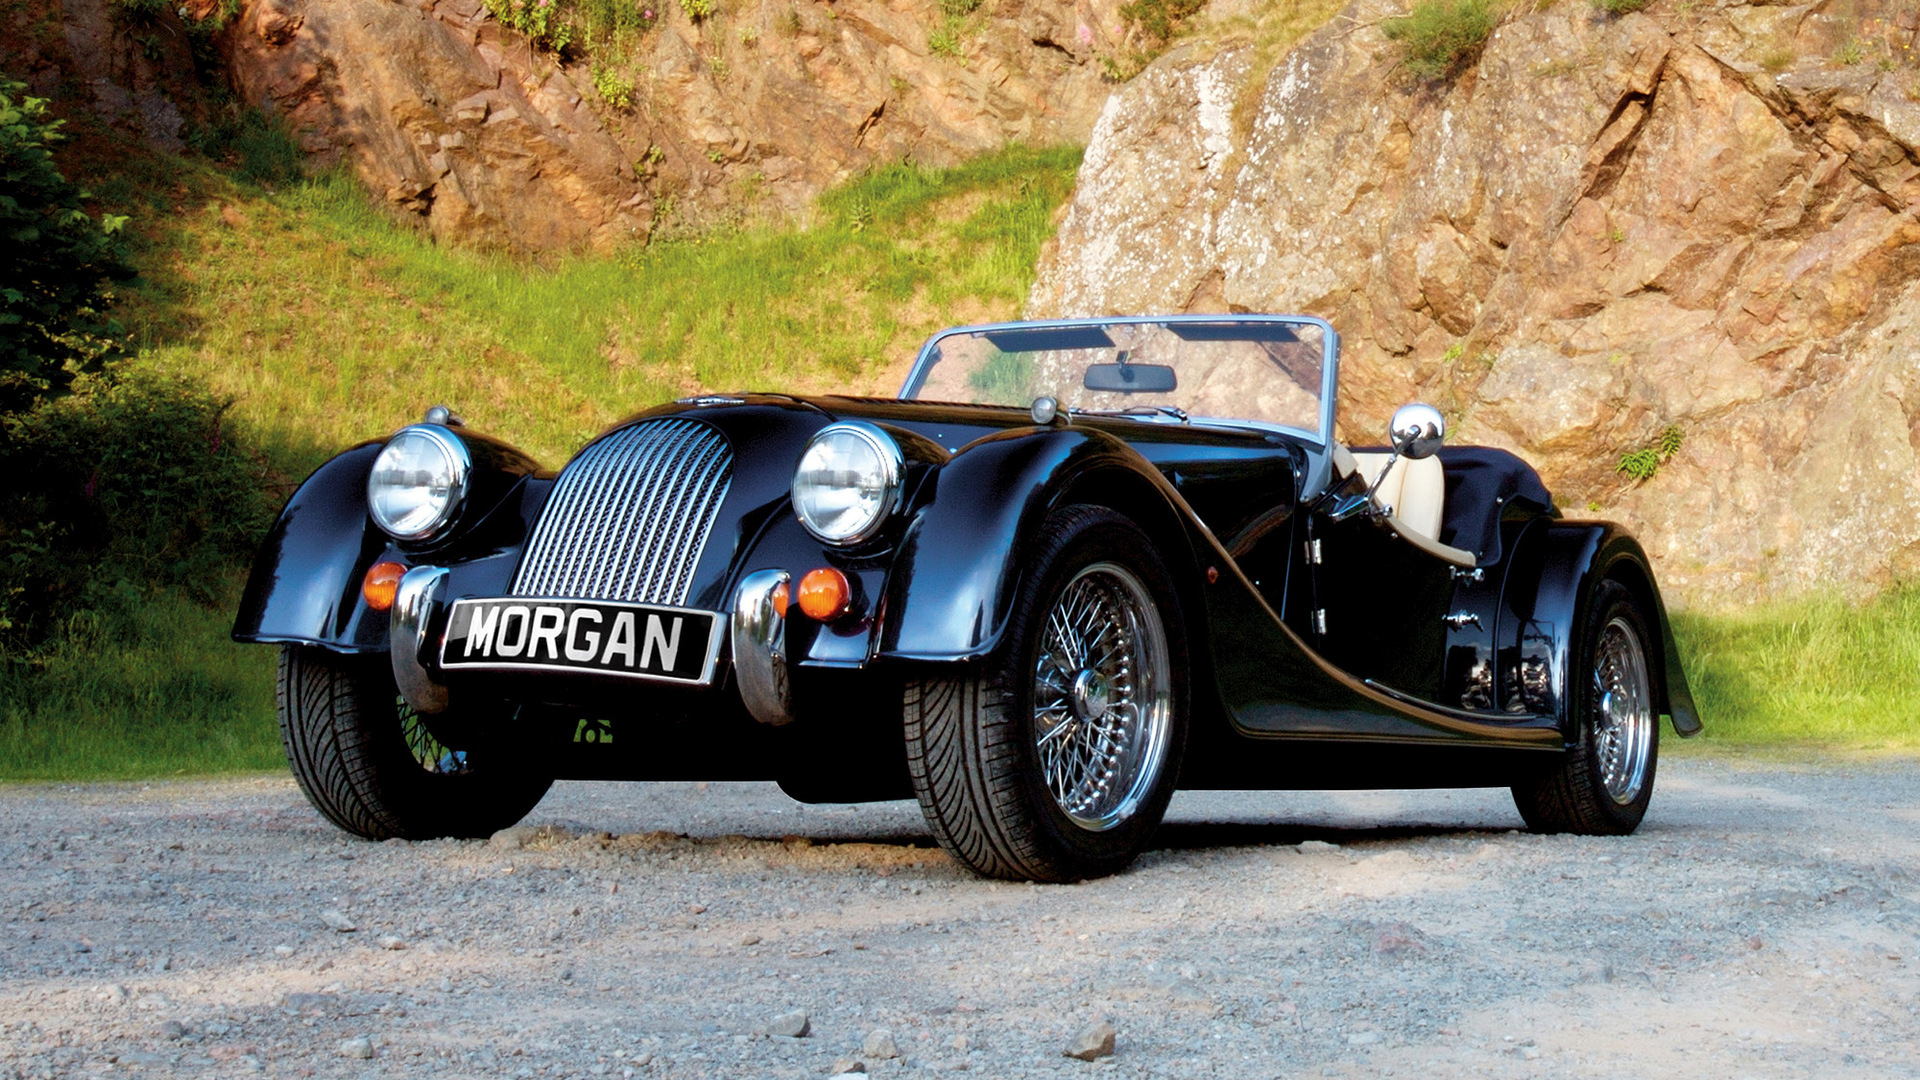 Morgan Roadster #21